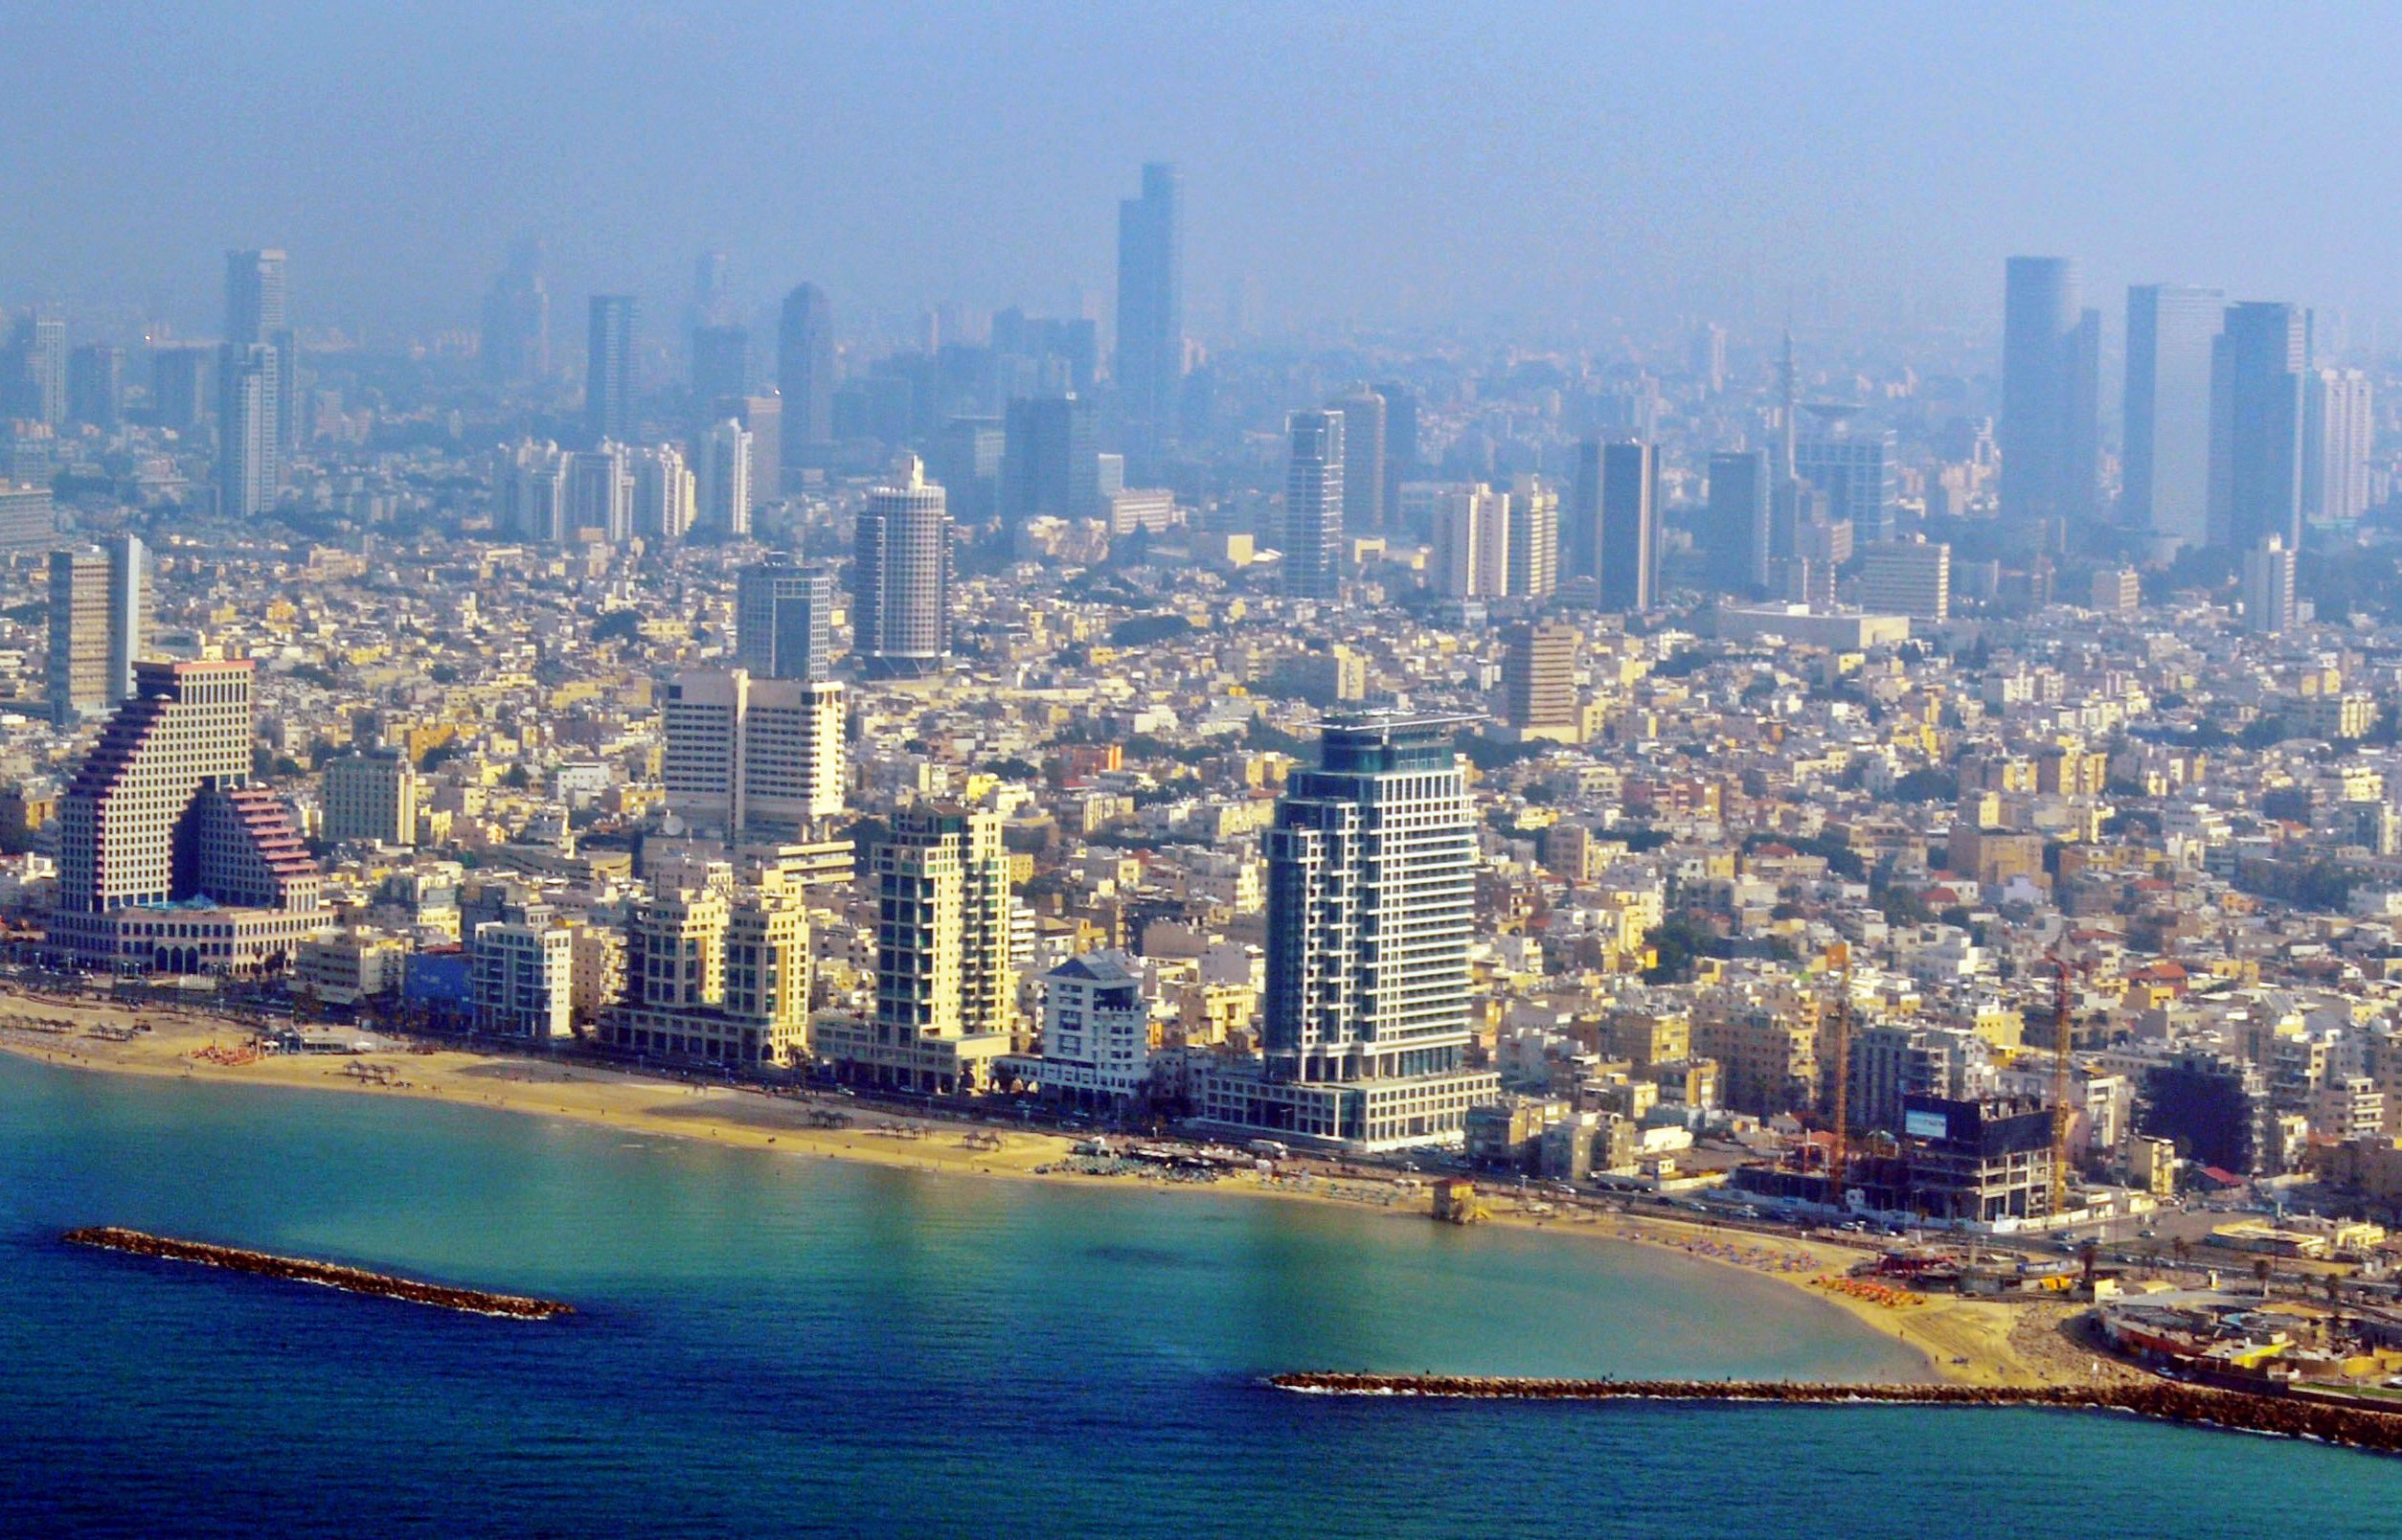 Tel aviv wallpapers images photos pictures backgrounds - Wallpaper photos ...